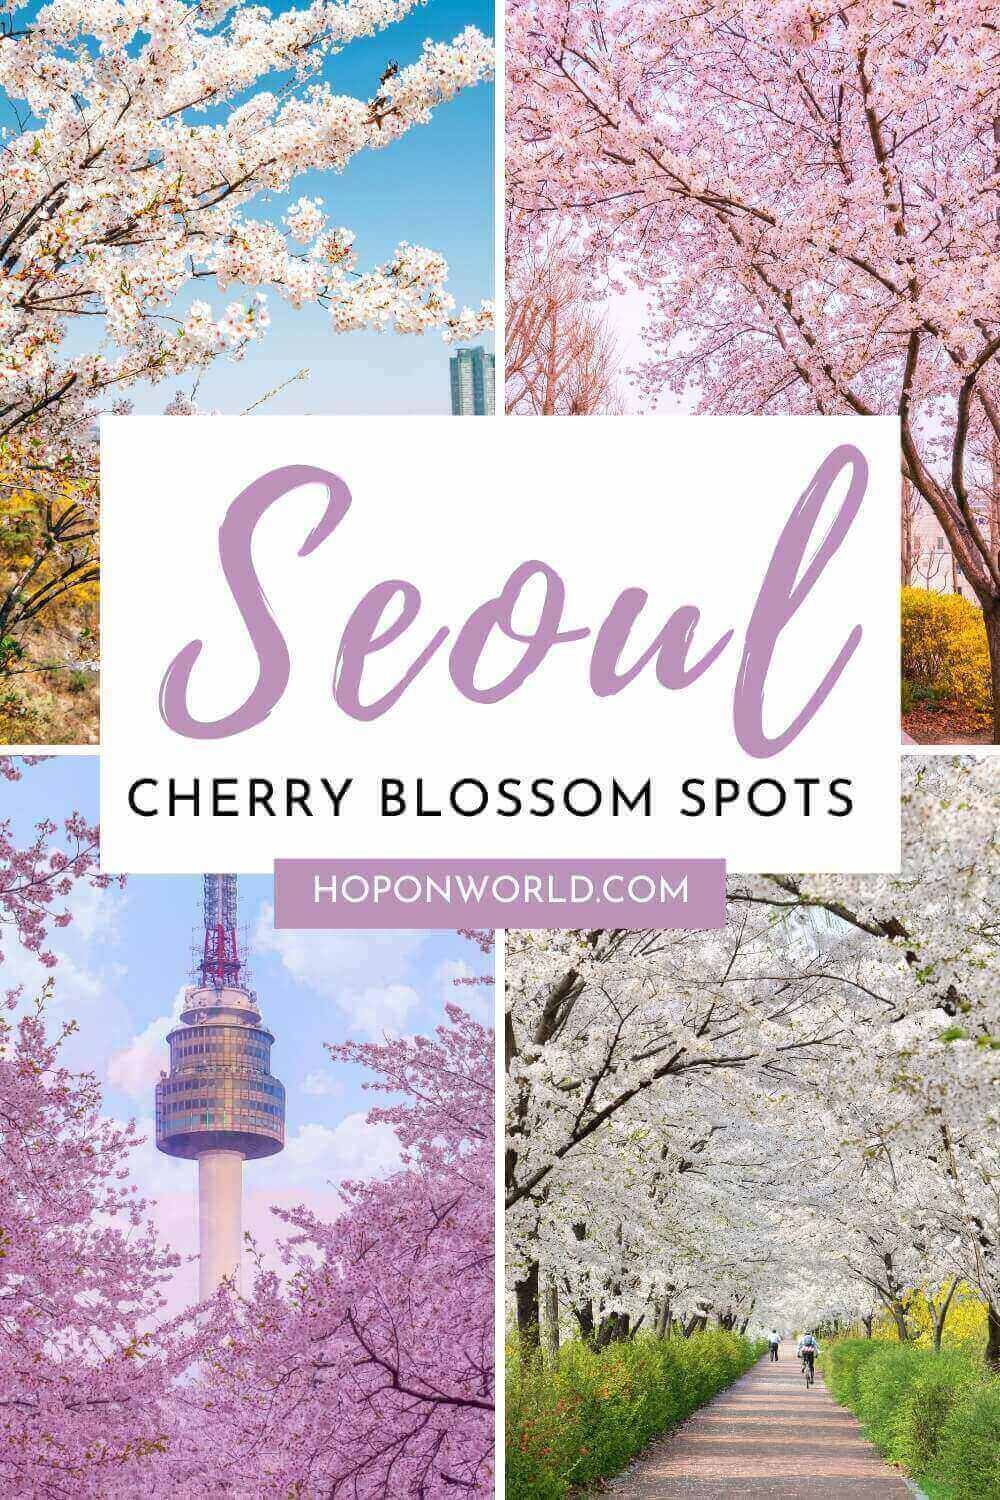 Where To See Cherry Blossoms In Seoul Hoponworld In 2021 Spring Trip Asia Travel Cherry Blossom